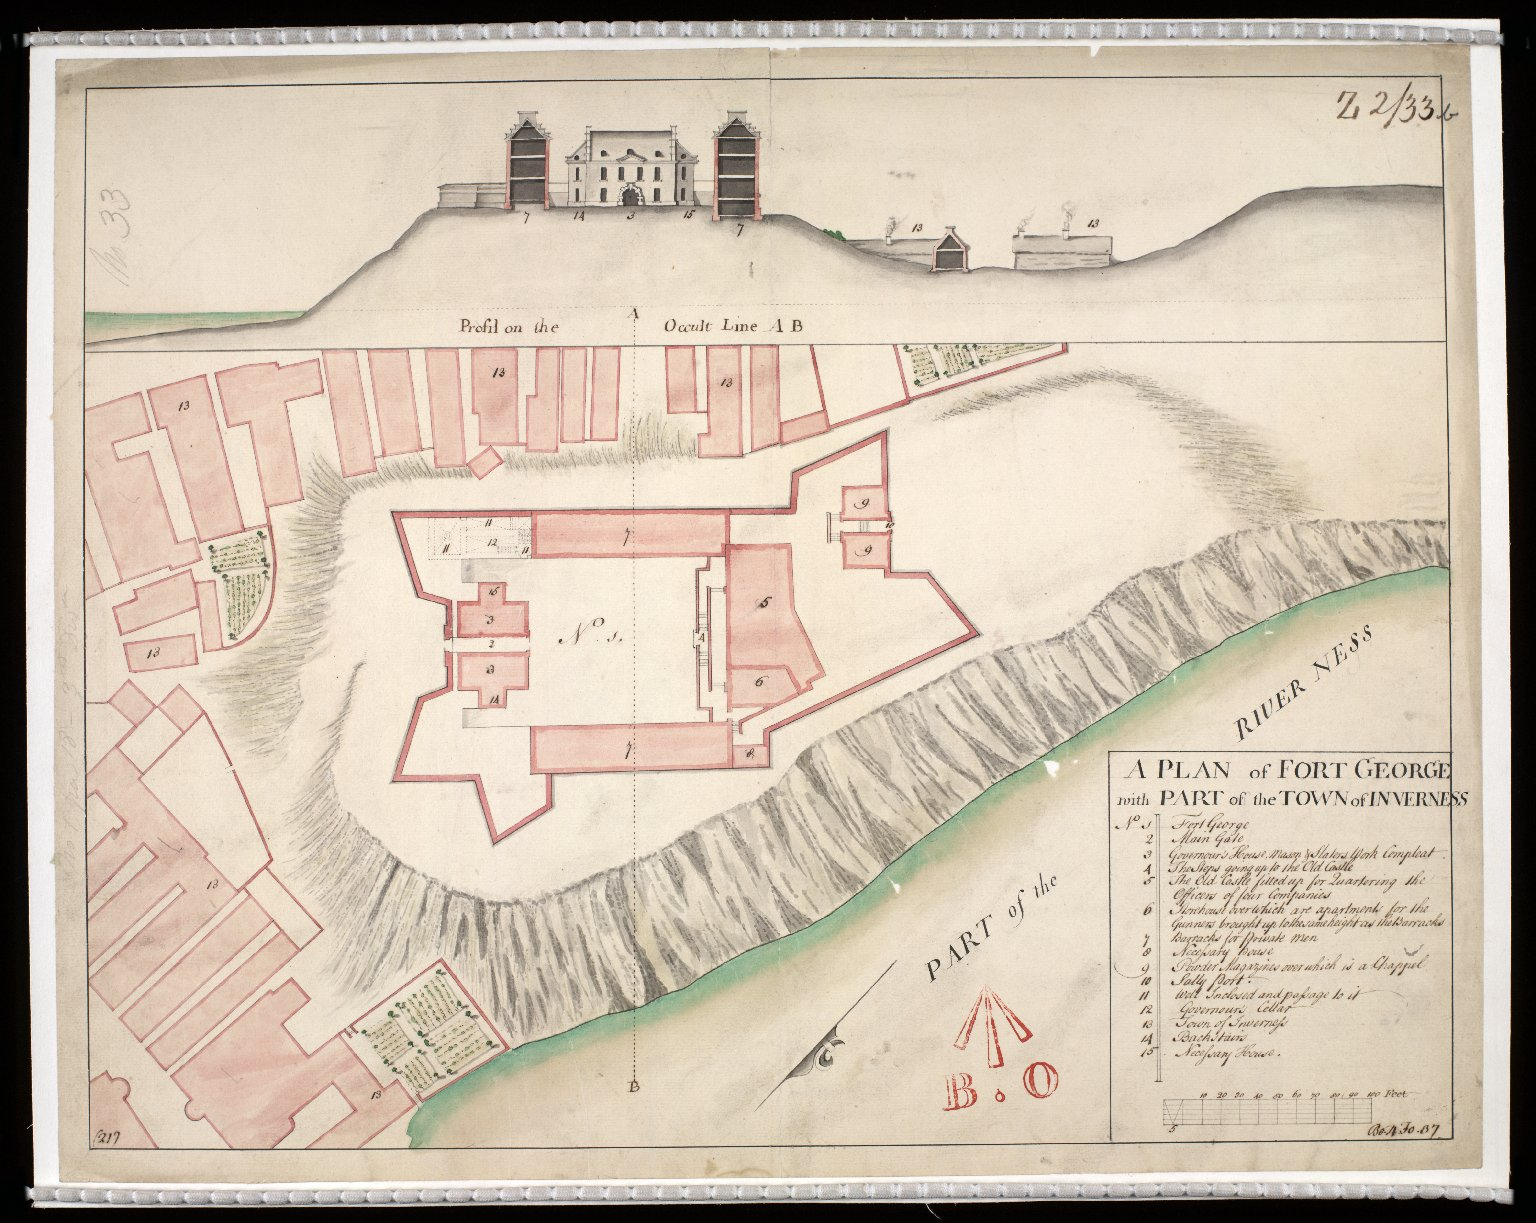 A Plan of Fort George wth part of the town of Inverness [1730] [copy] [1 of 1]